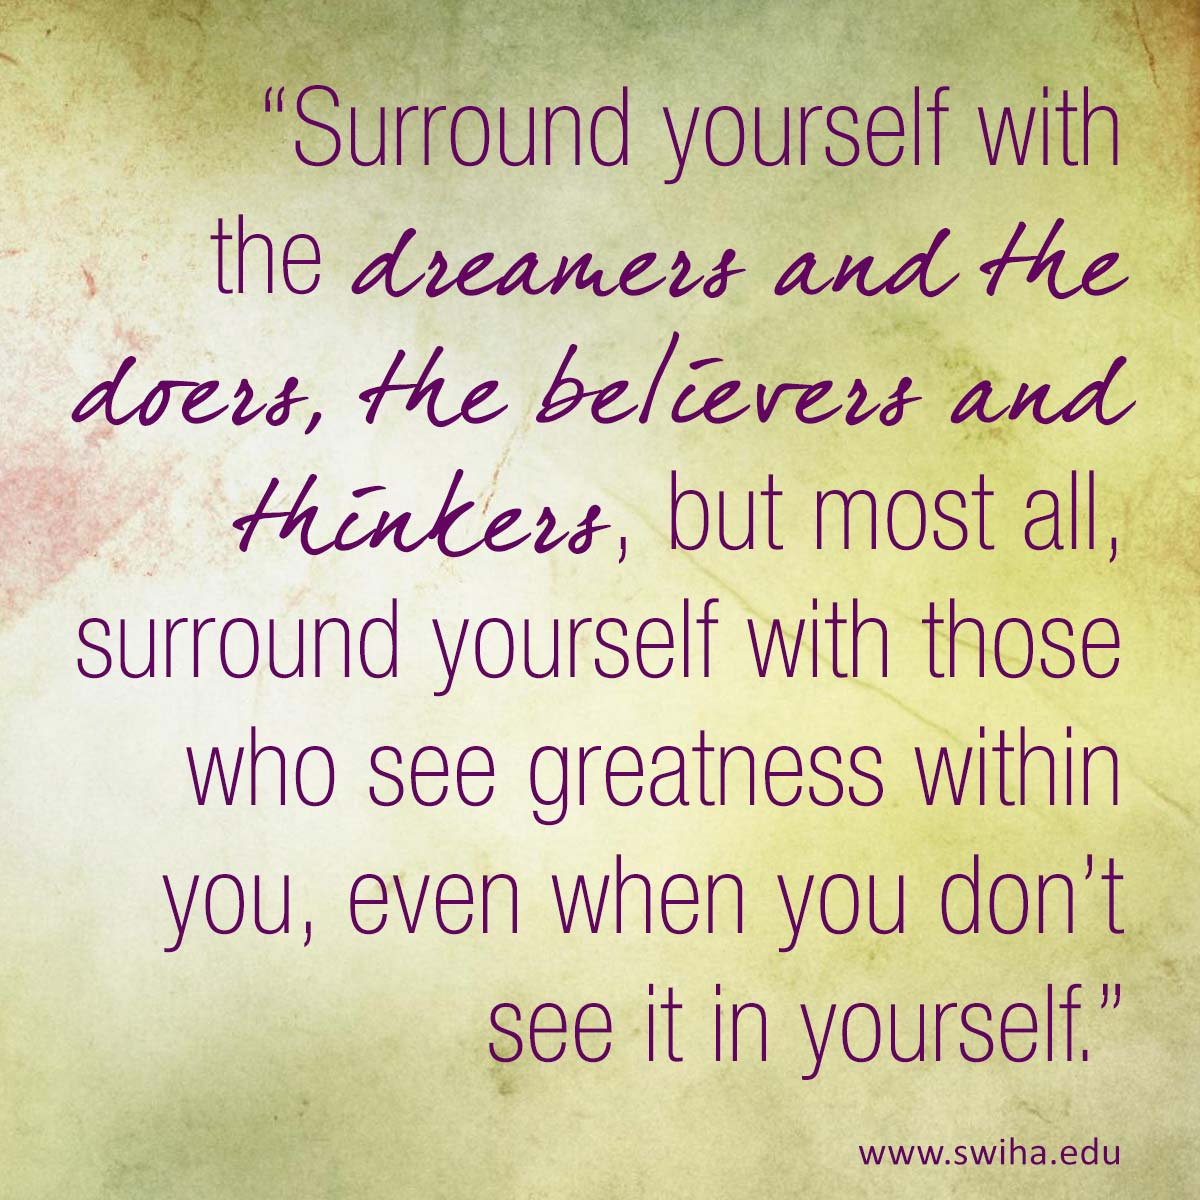 Surround-yourself-AD